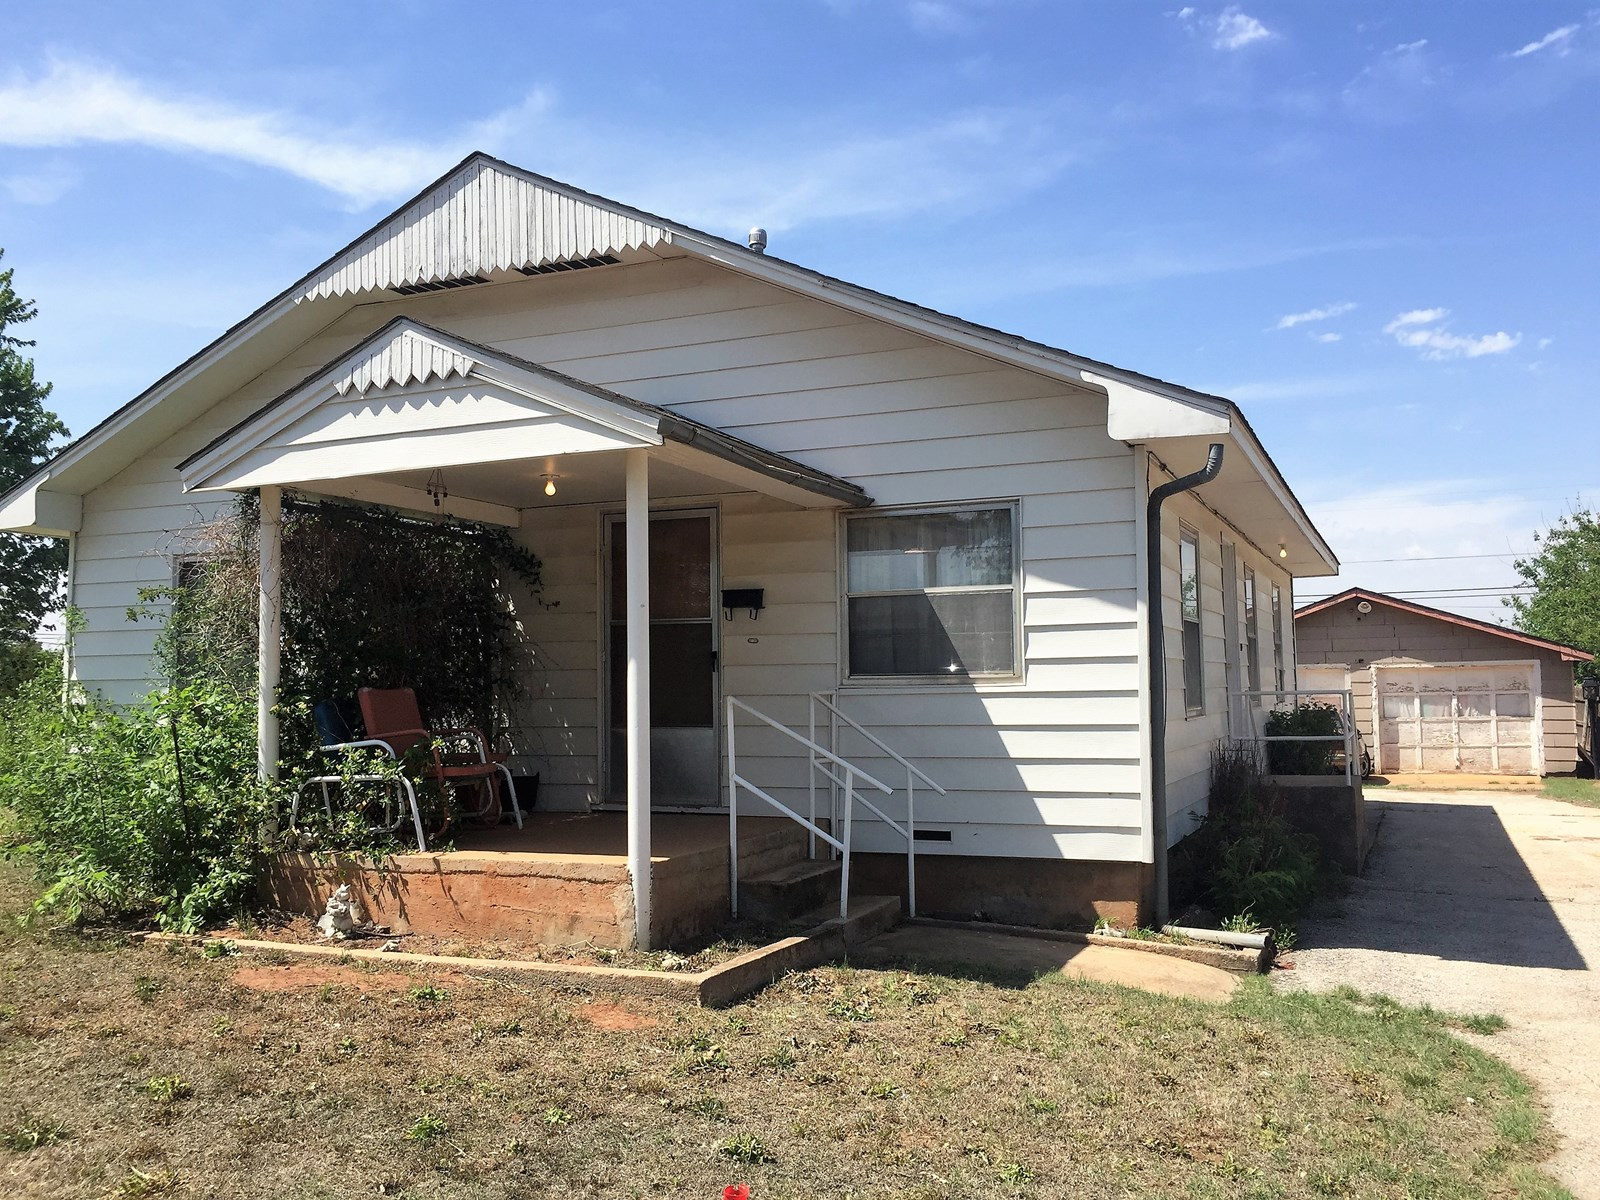 Clinton, OK 73601 House for Sale, Custer County